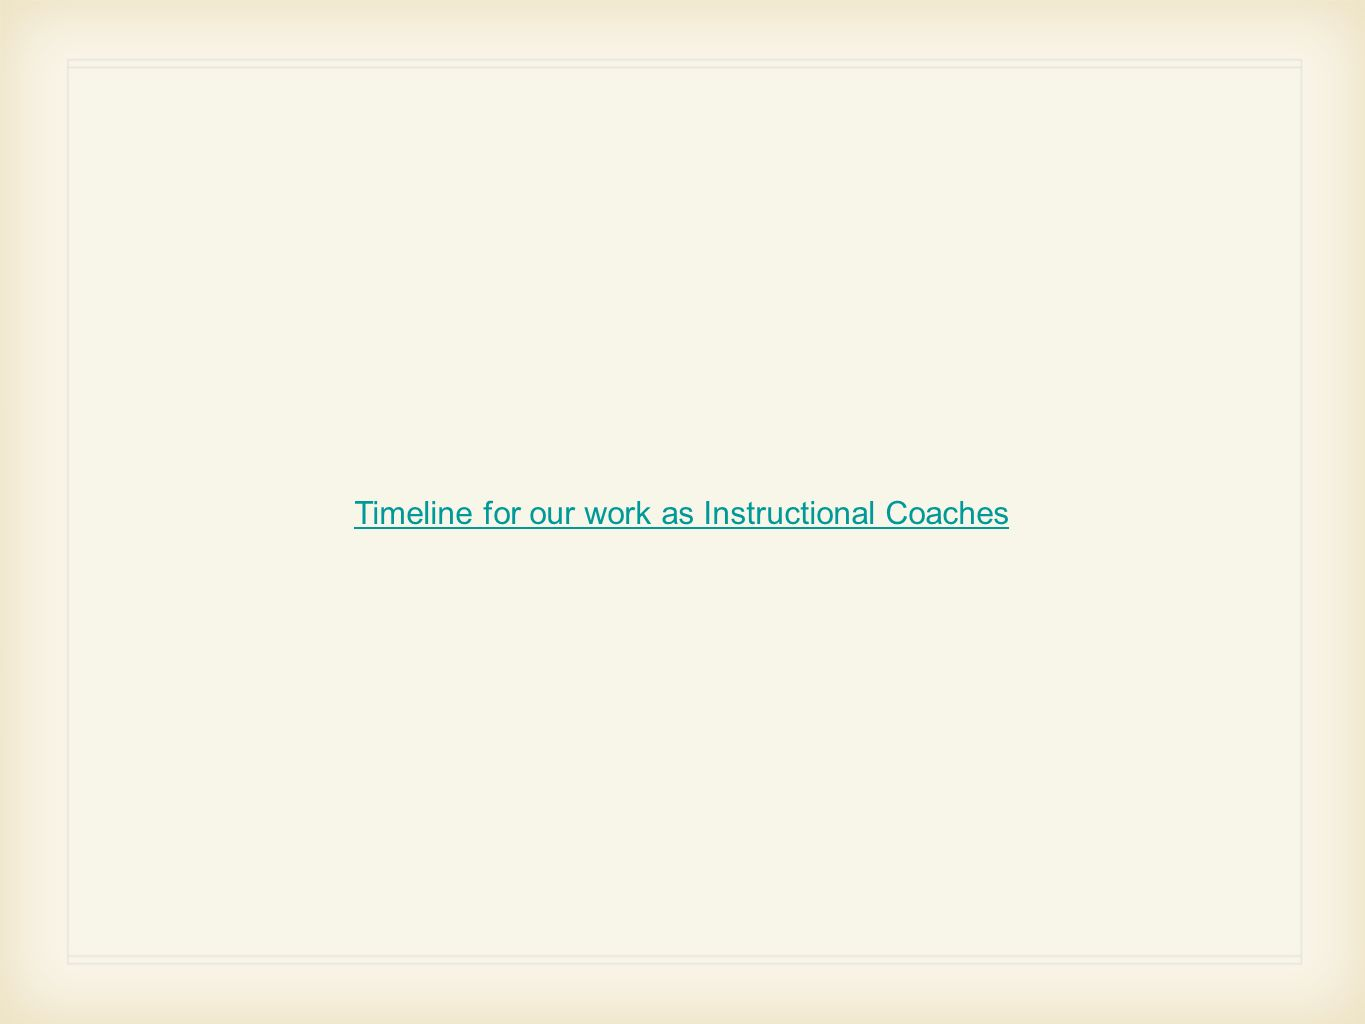 Timeline for our work as Instructional Coaches